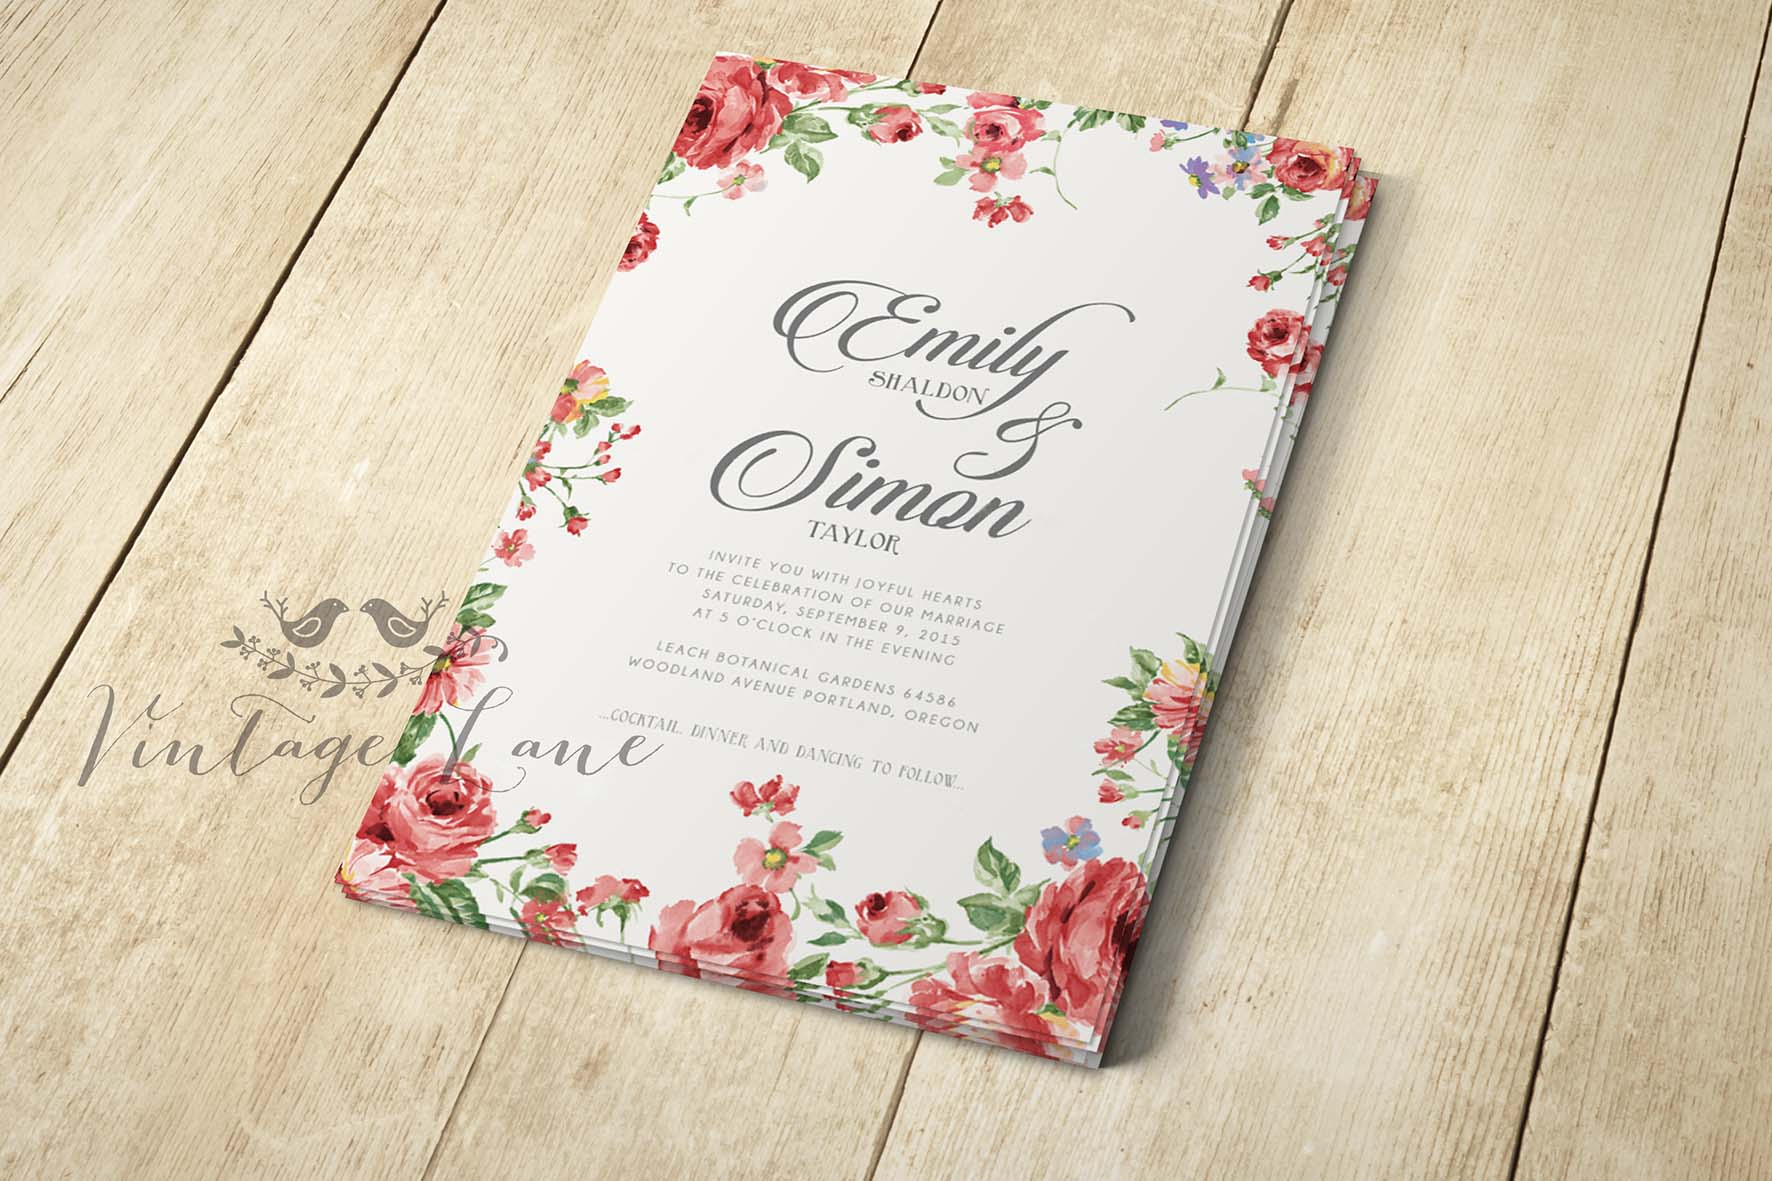 Floral Rose Wedding Invitations Cork Ireland Vintage Lane Vintage Lane